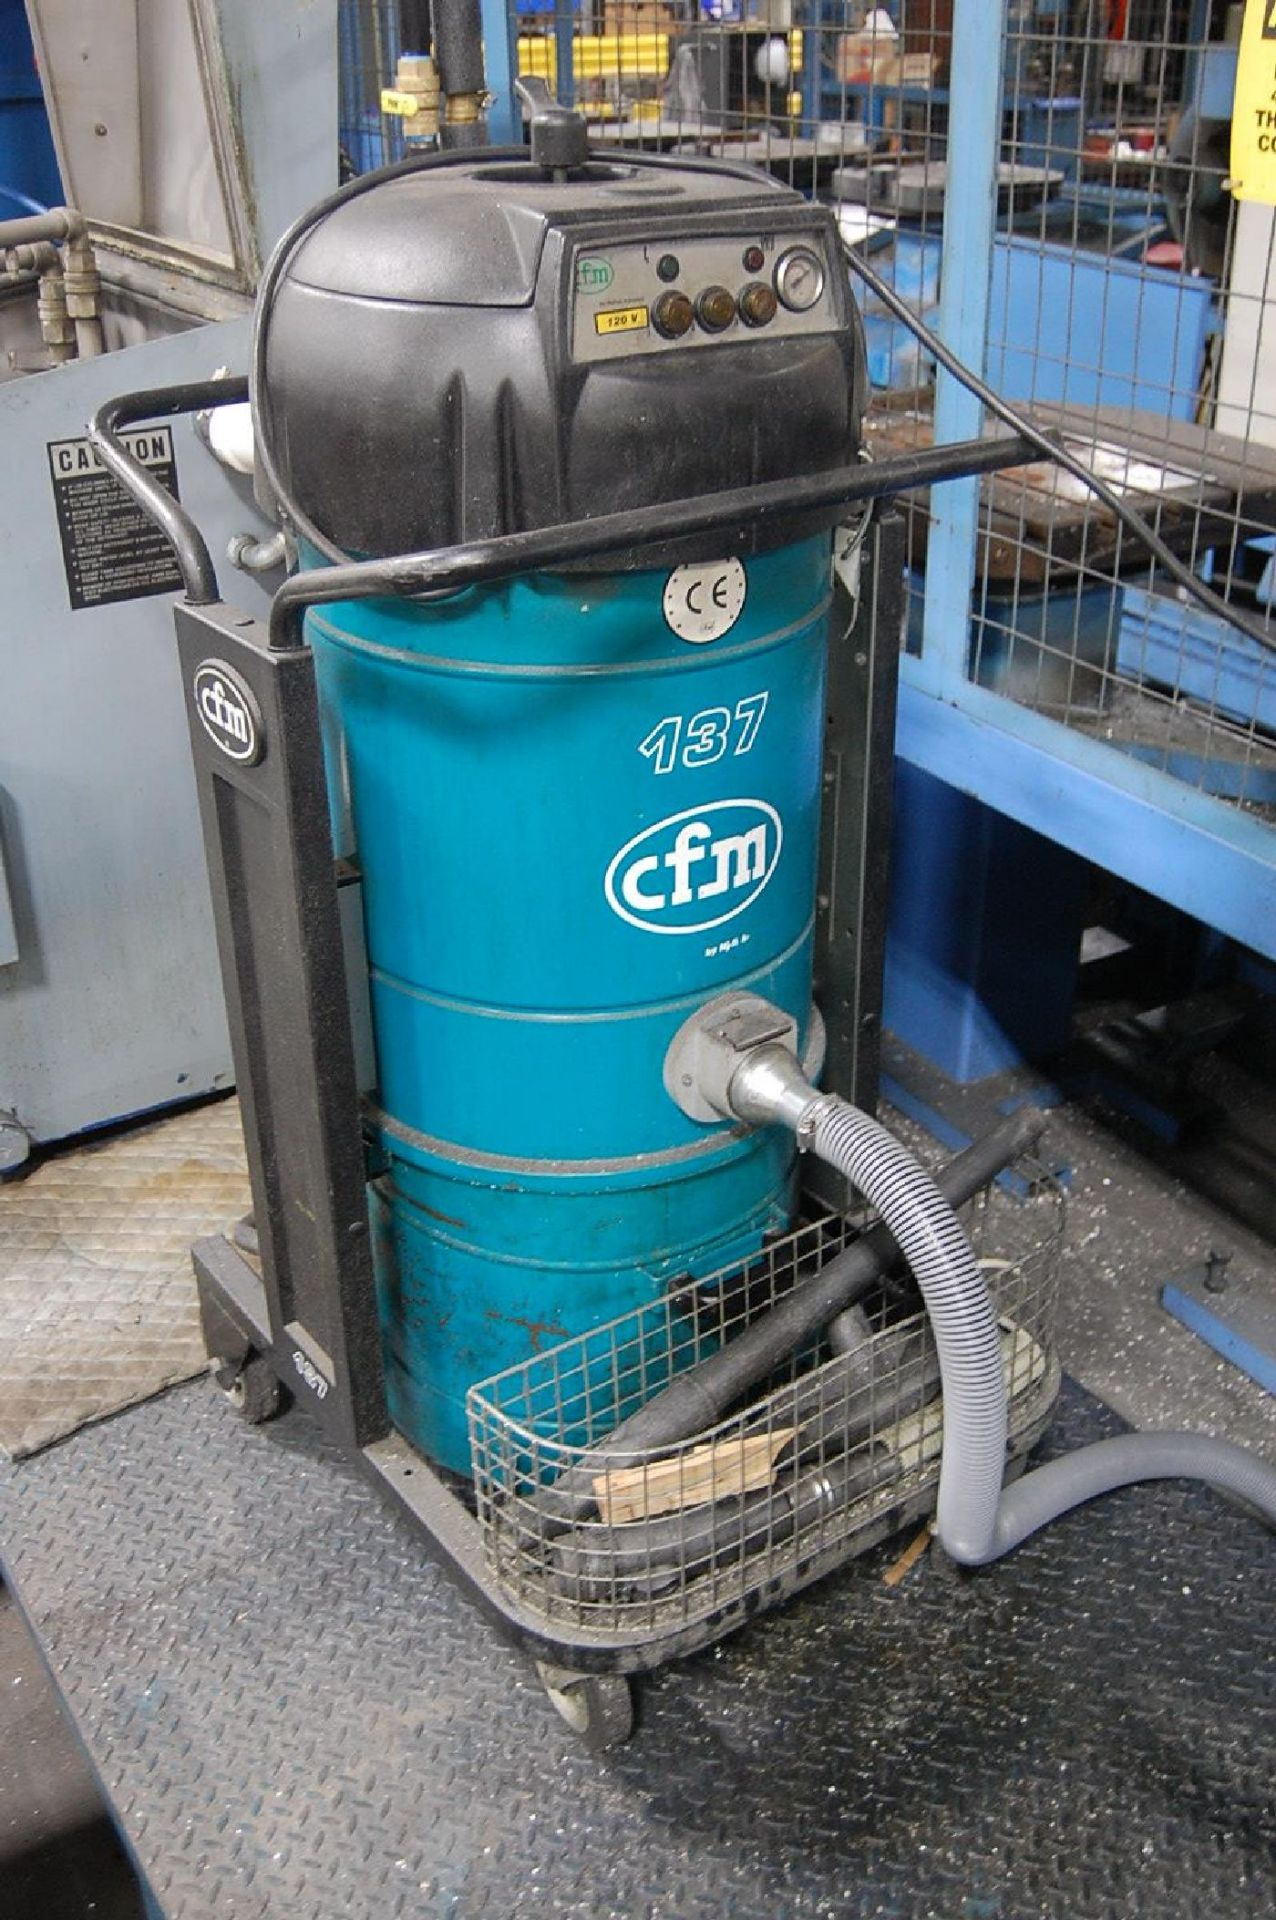 Lot 9 - Nilfisk Model cfm 137 Vacuum System